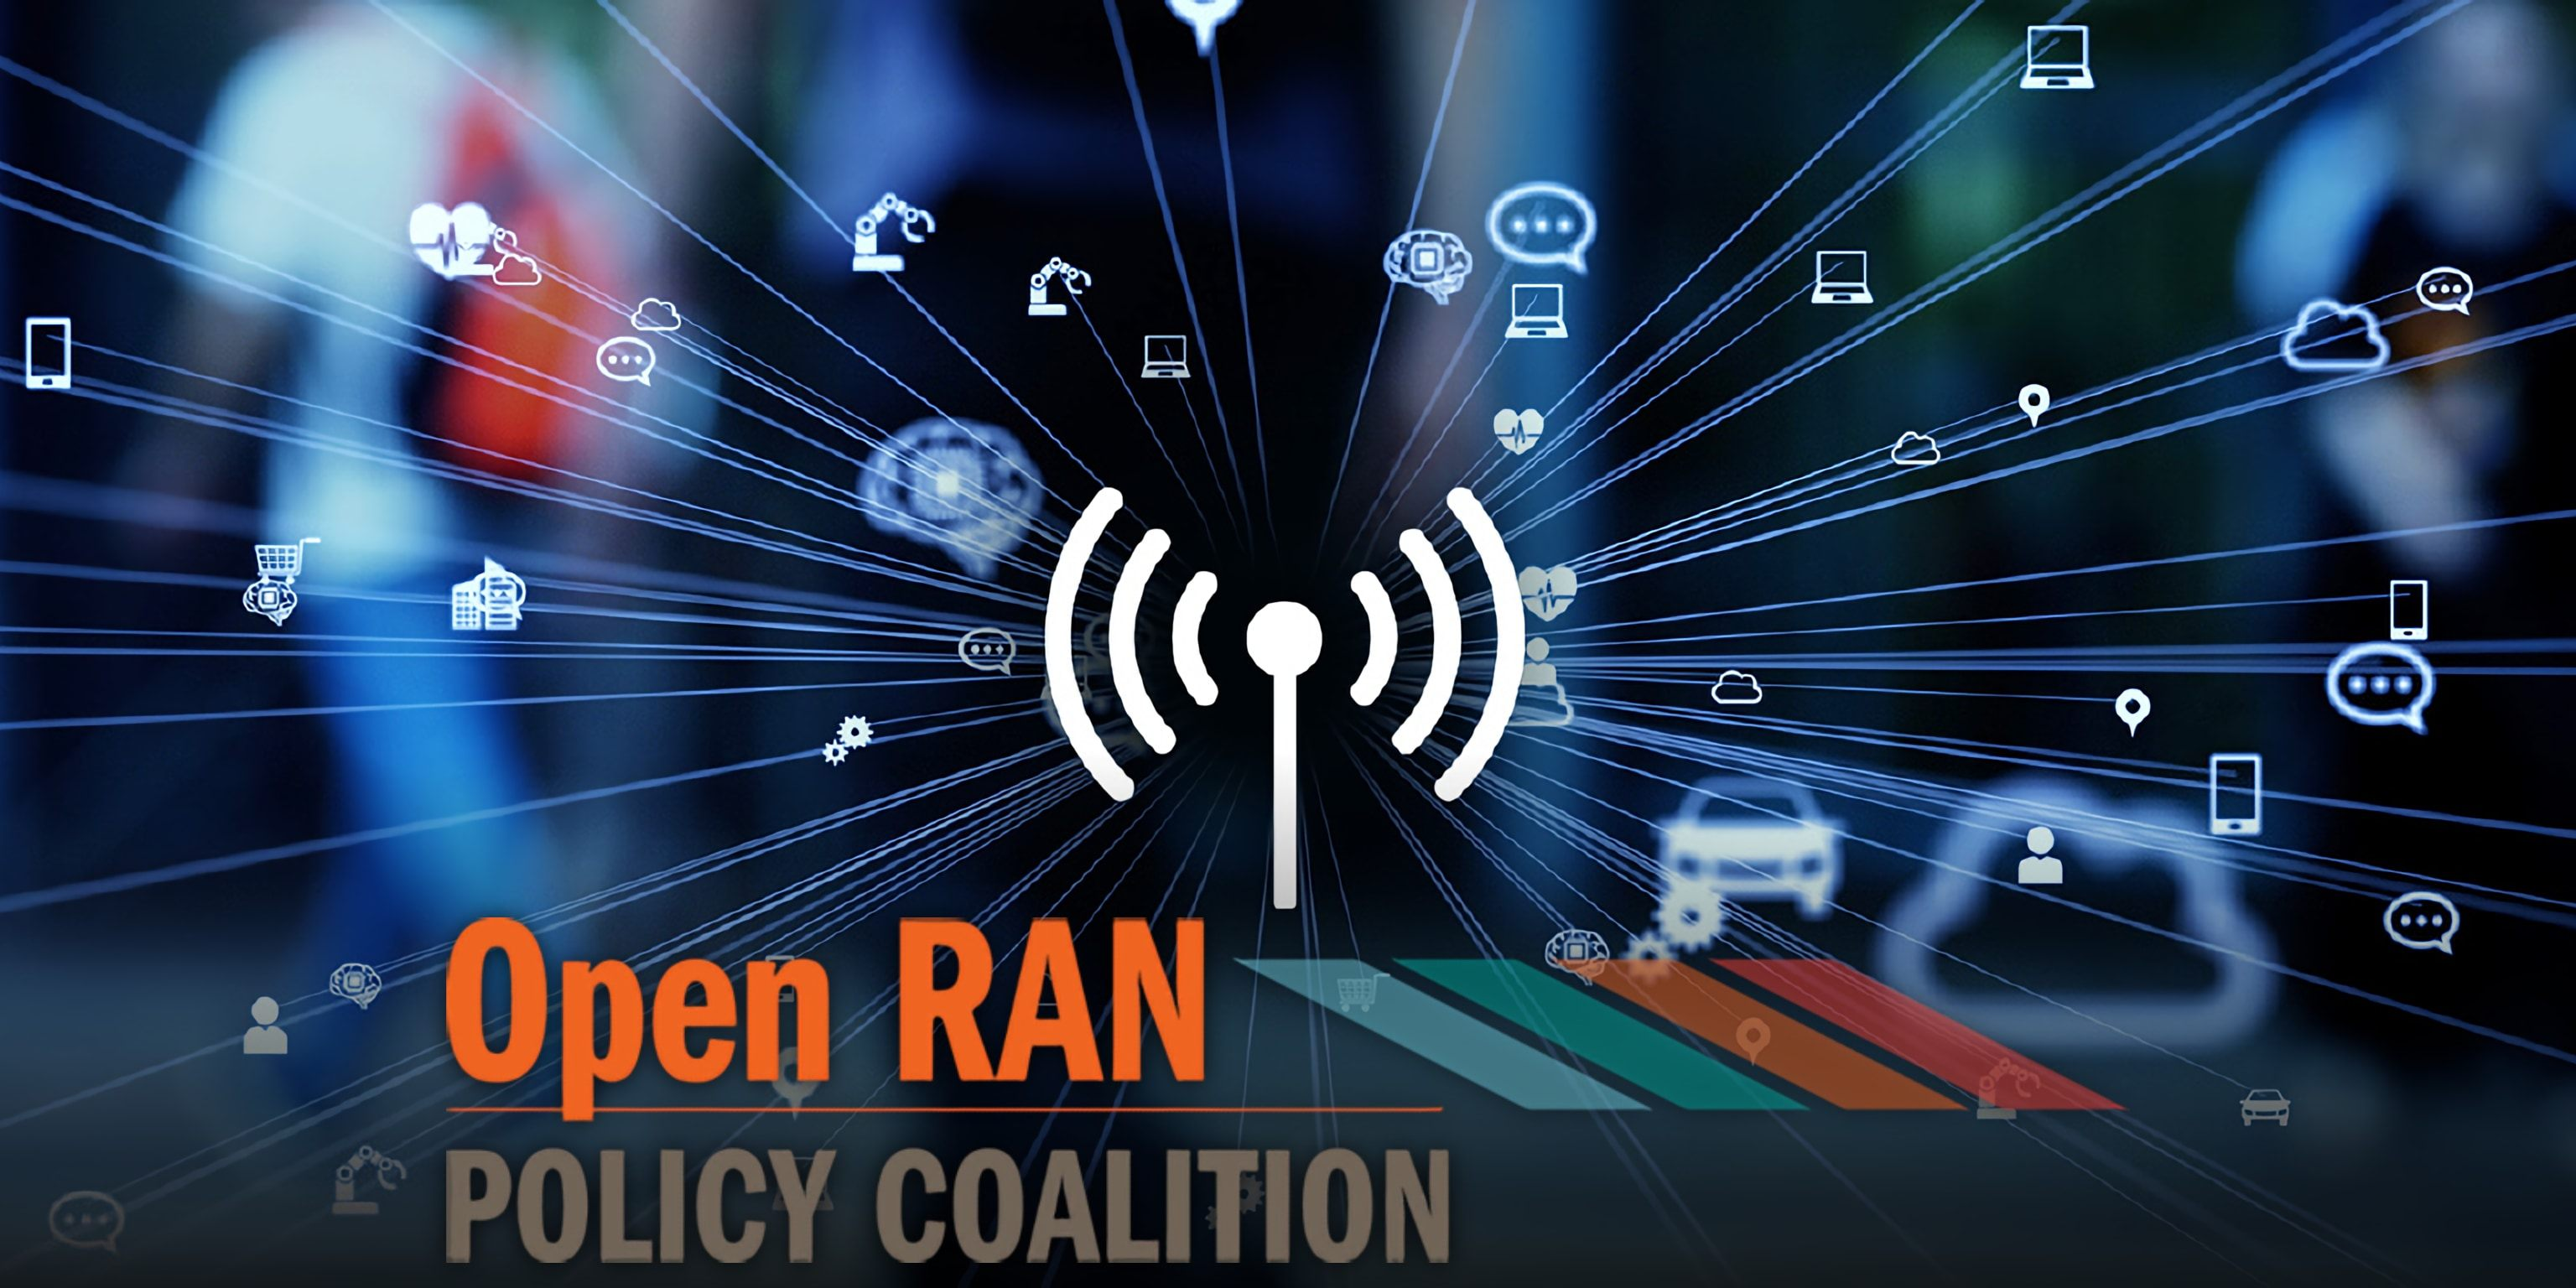 The Open RAN Policy Coalition